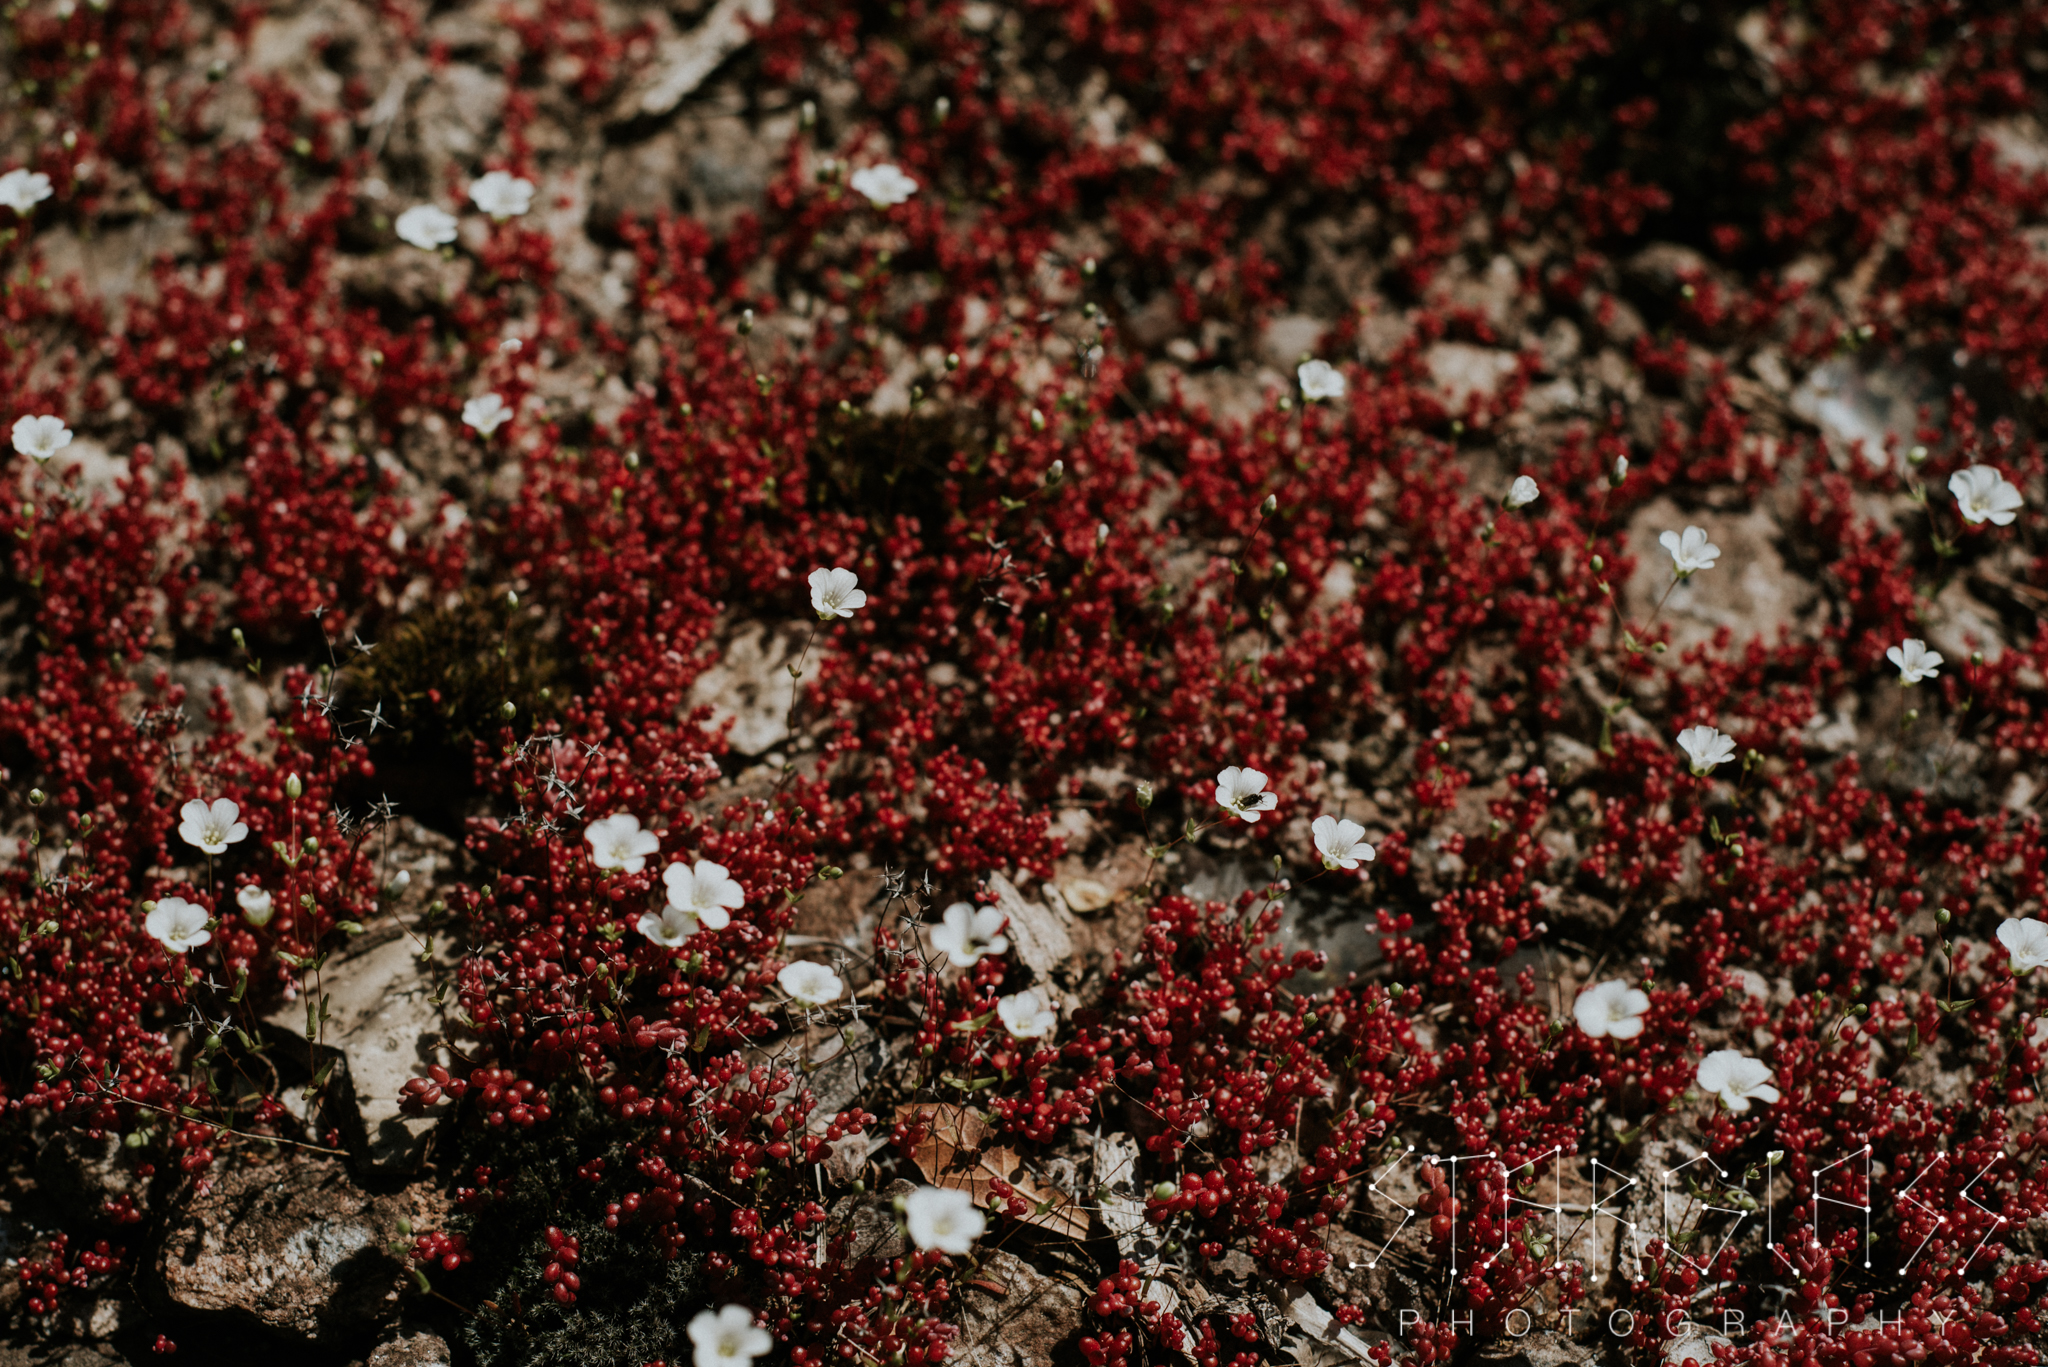 Tiny red and white blooms.